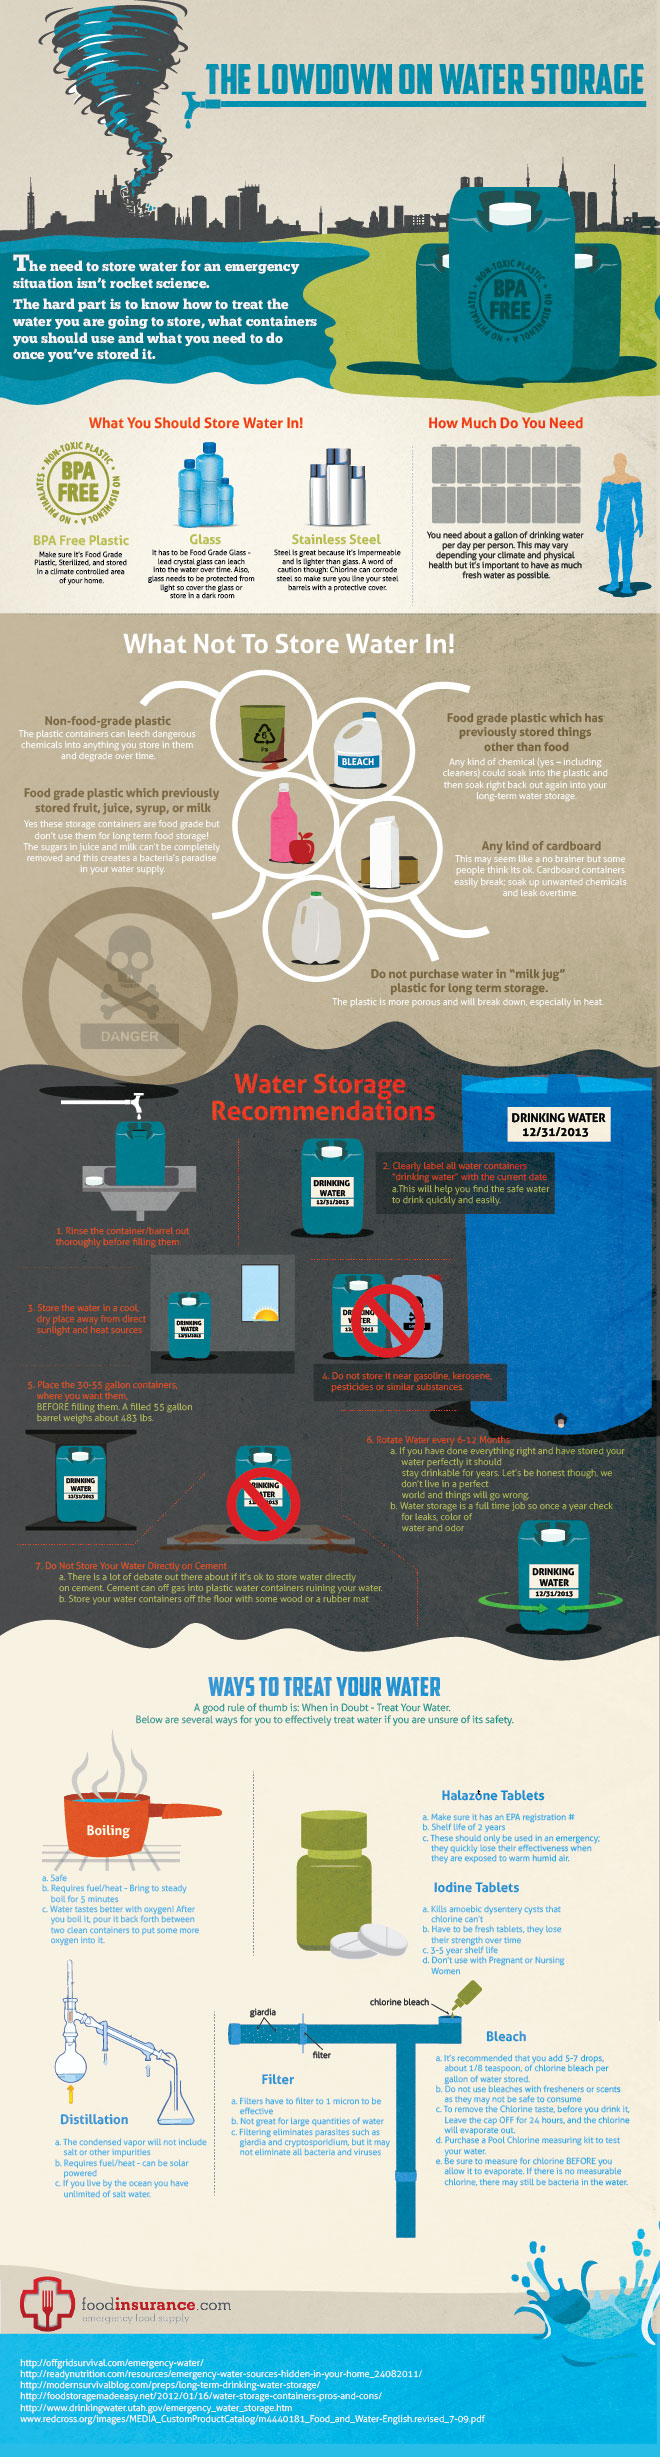 Lowdown onwater storage infographic